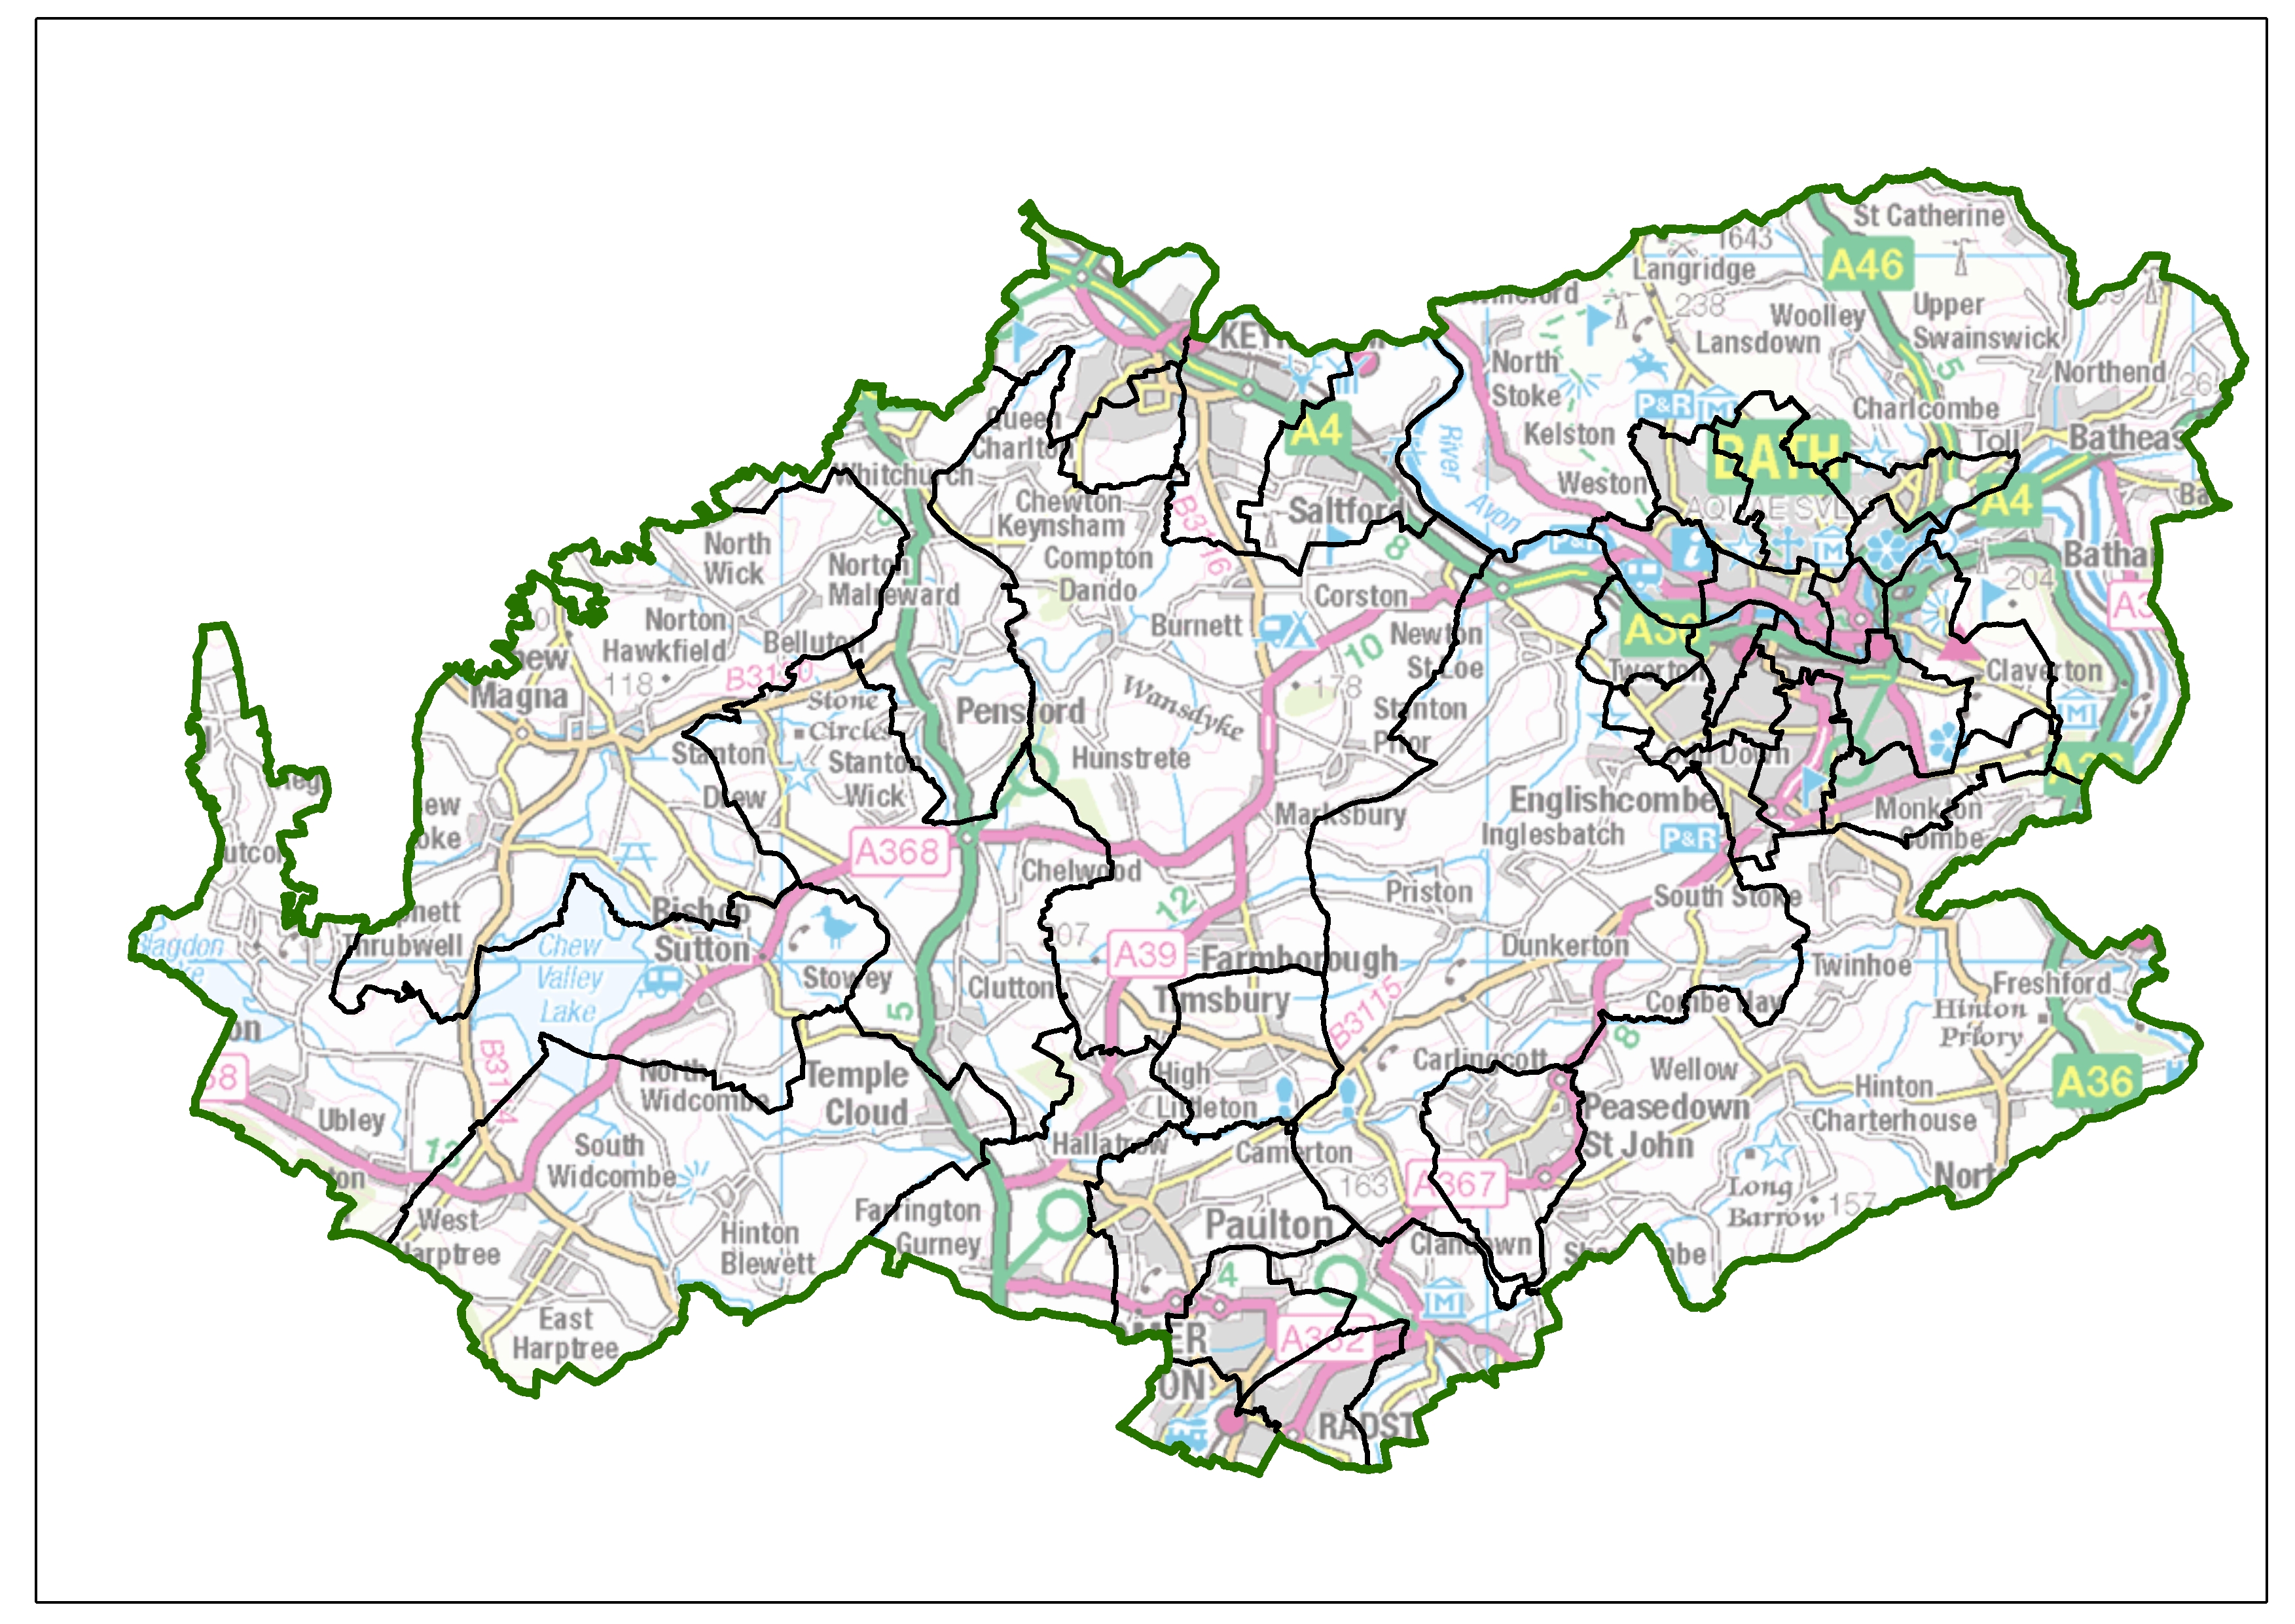 Council ward boundaries in Bath and North East Somerset are set to change. Find and use this image of the current wards at: